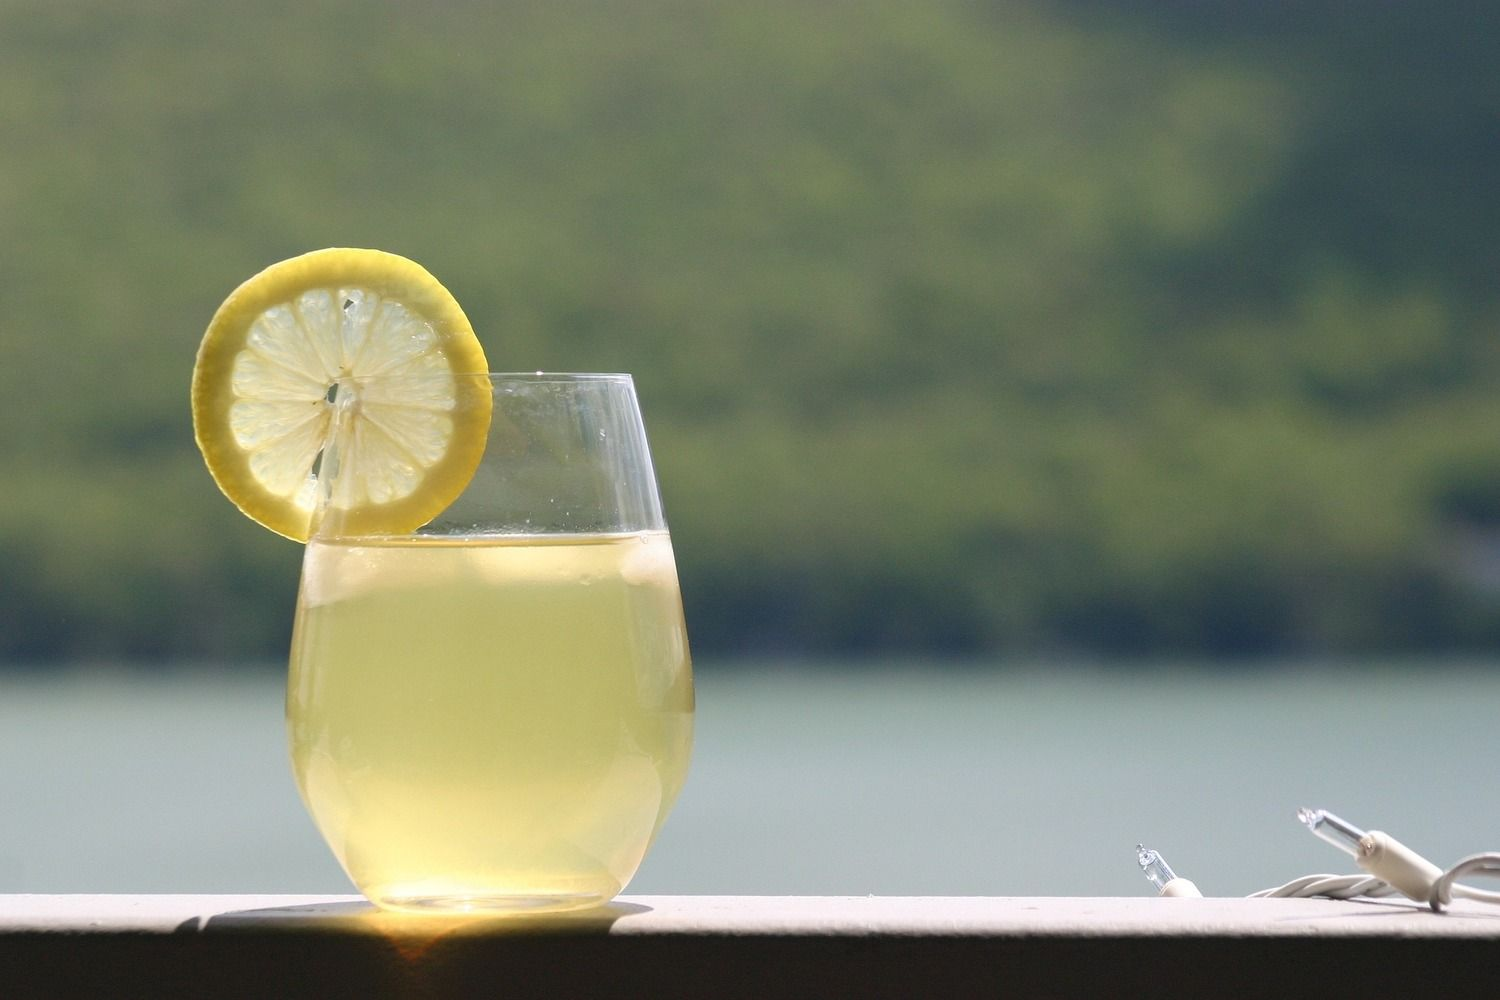 Demonade by Golden Coast Mead | A summer mead cocktail recipe that will cool you down on the hottest of days. | http://www.goldencoastmead.com/mead-tails/ #orangeblossom #citrus #hardlemonade